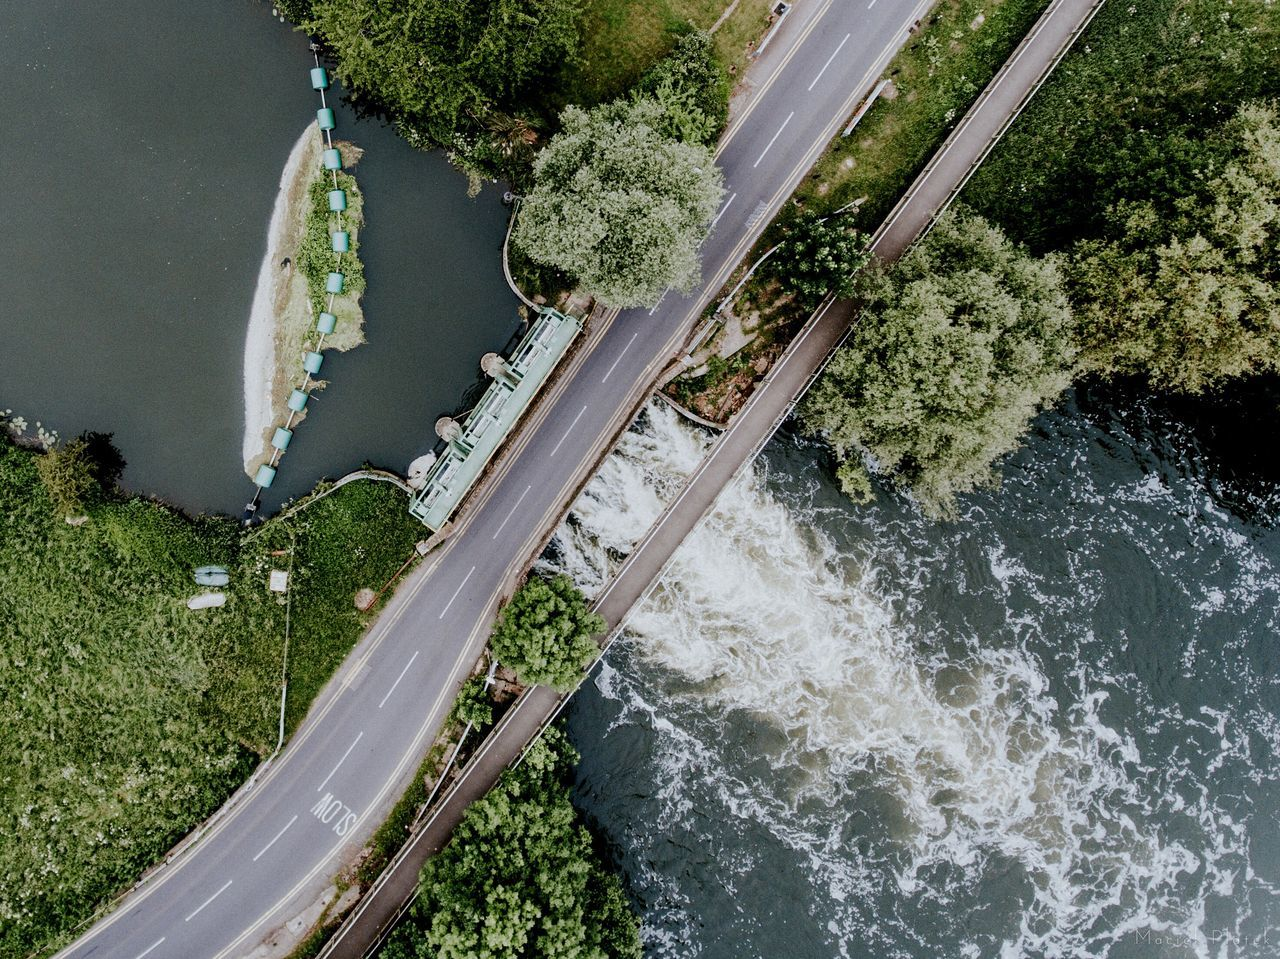 Water Dam Tree Water High Angle View Bridge - Man Made Structure Plant Nature No People Outdoors Day Urban Urban Geometry Road Dronephotography Drone  Phantom 4 Dji Aerial Aerial Photography Landscape Epic Tranquility The City Light